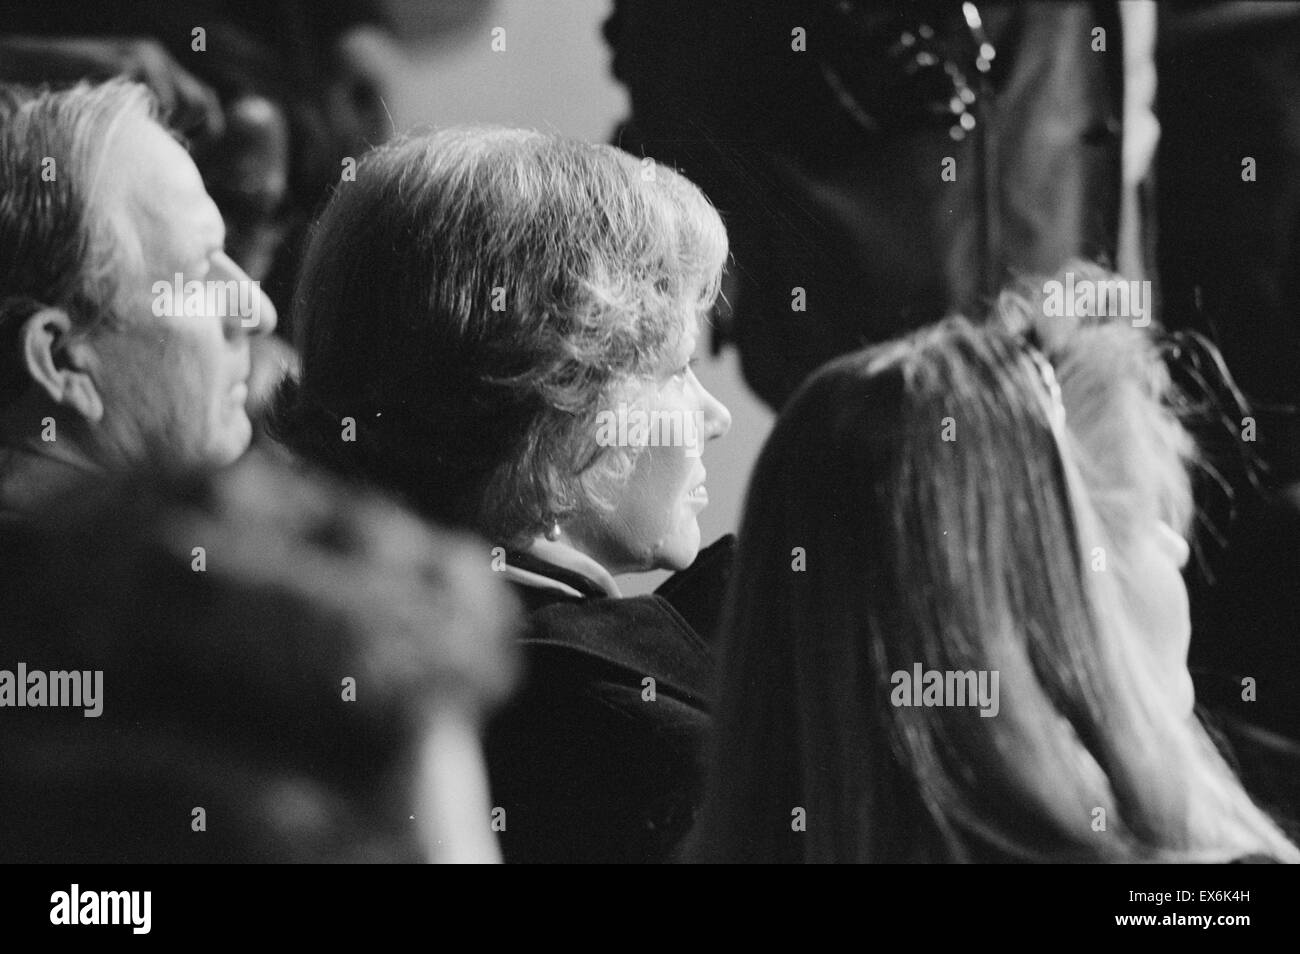 Photograph of First Lady Rosalynn Carter at President Carter's press conference. Photographed by Warren K. Leffler. Stock Photo